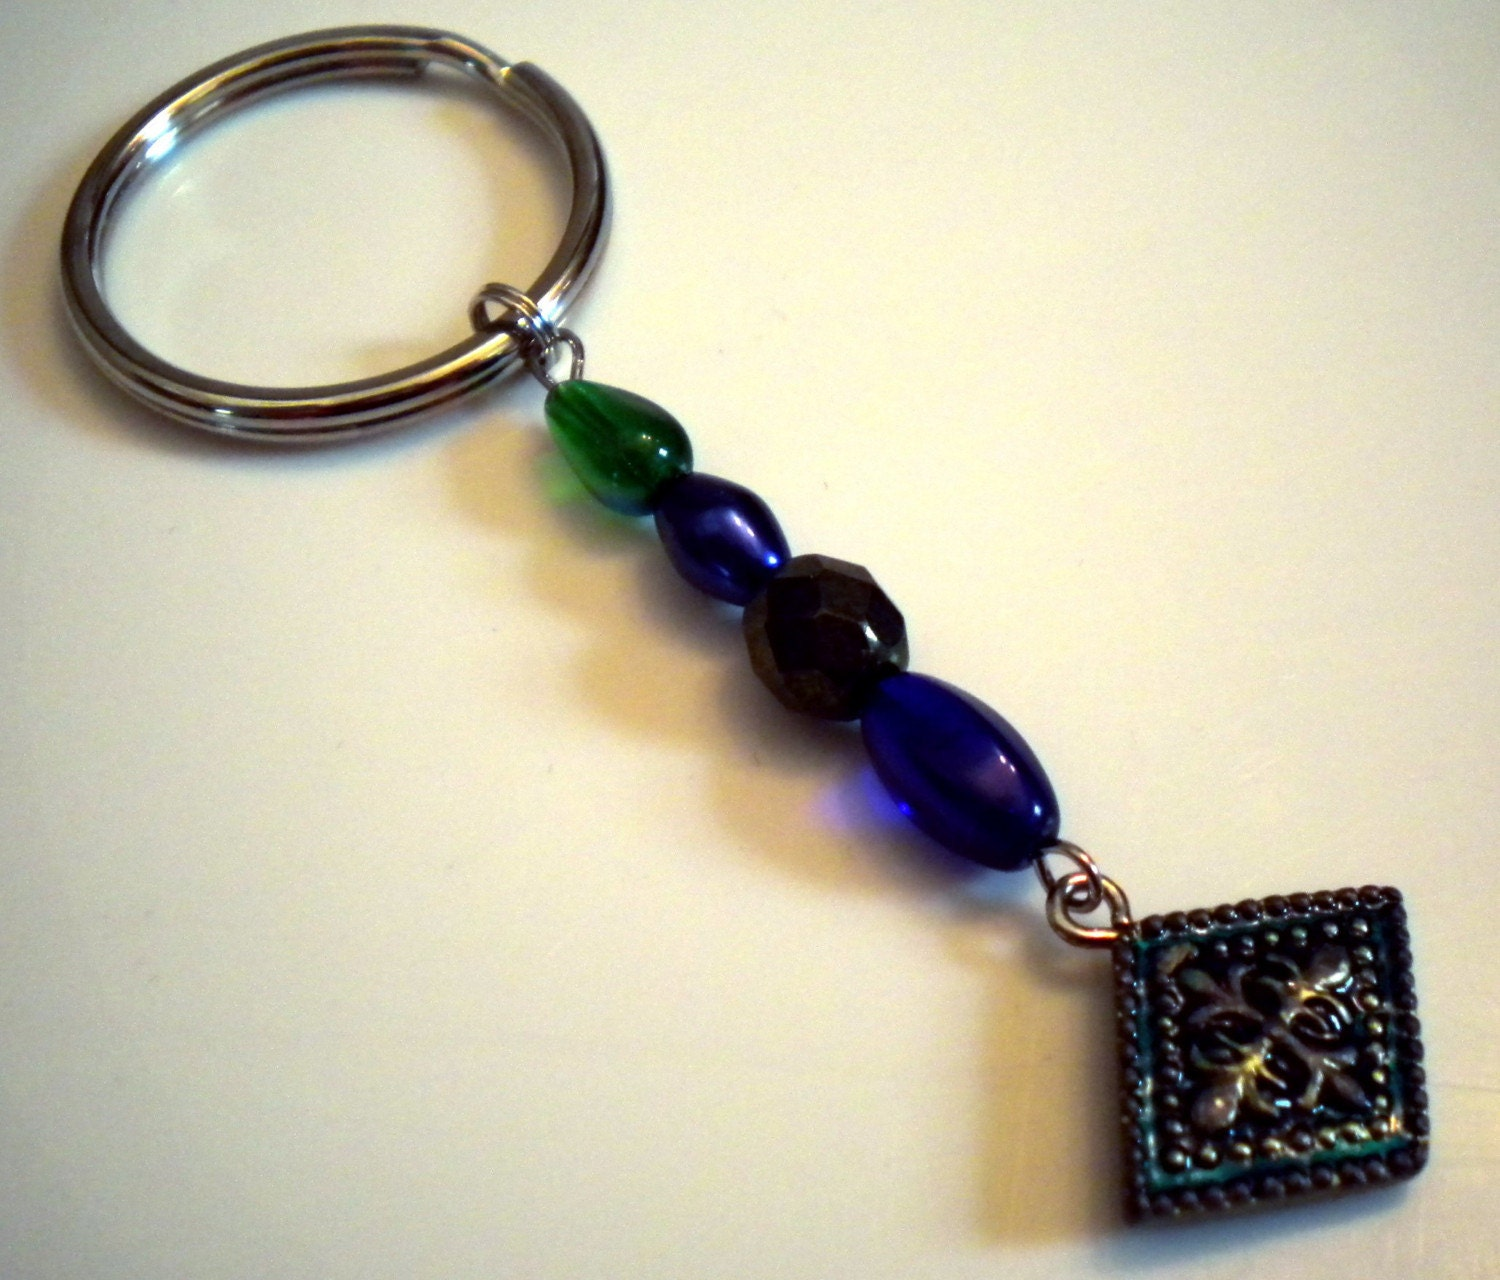 blue and green beaded key ring